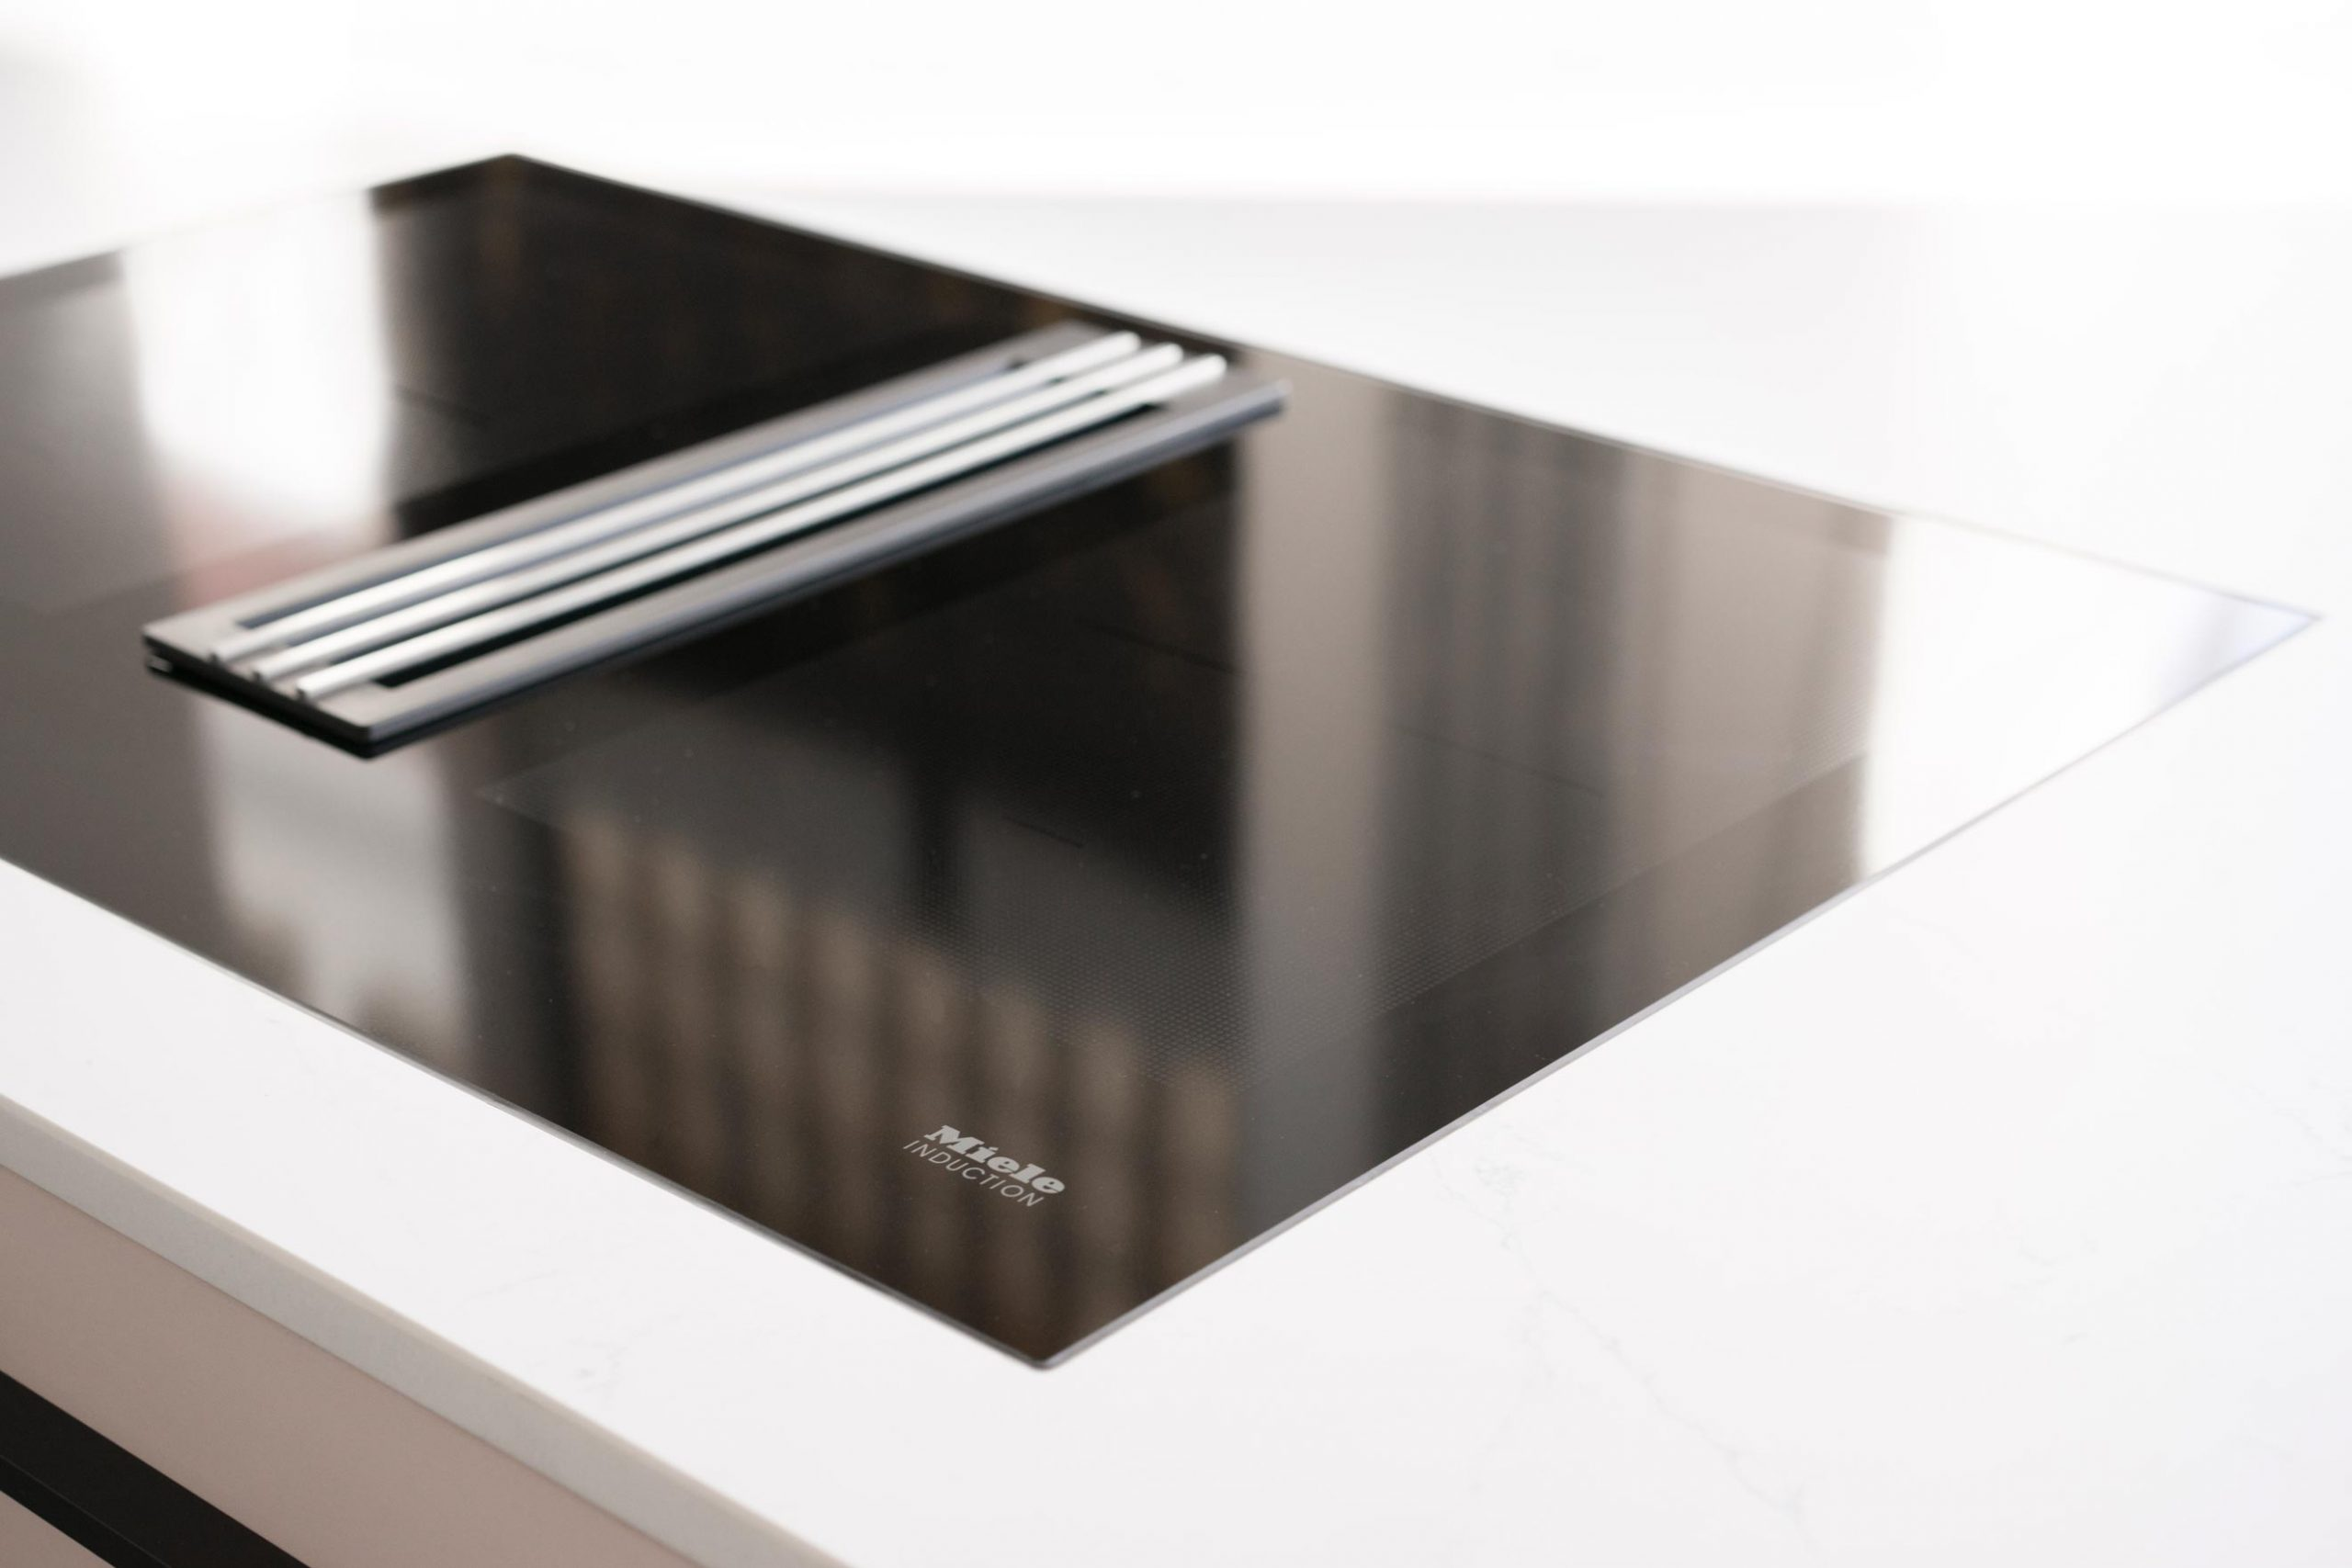 Kitchen island by MYKILOS with Miele cooktop